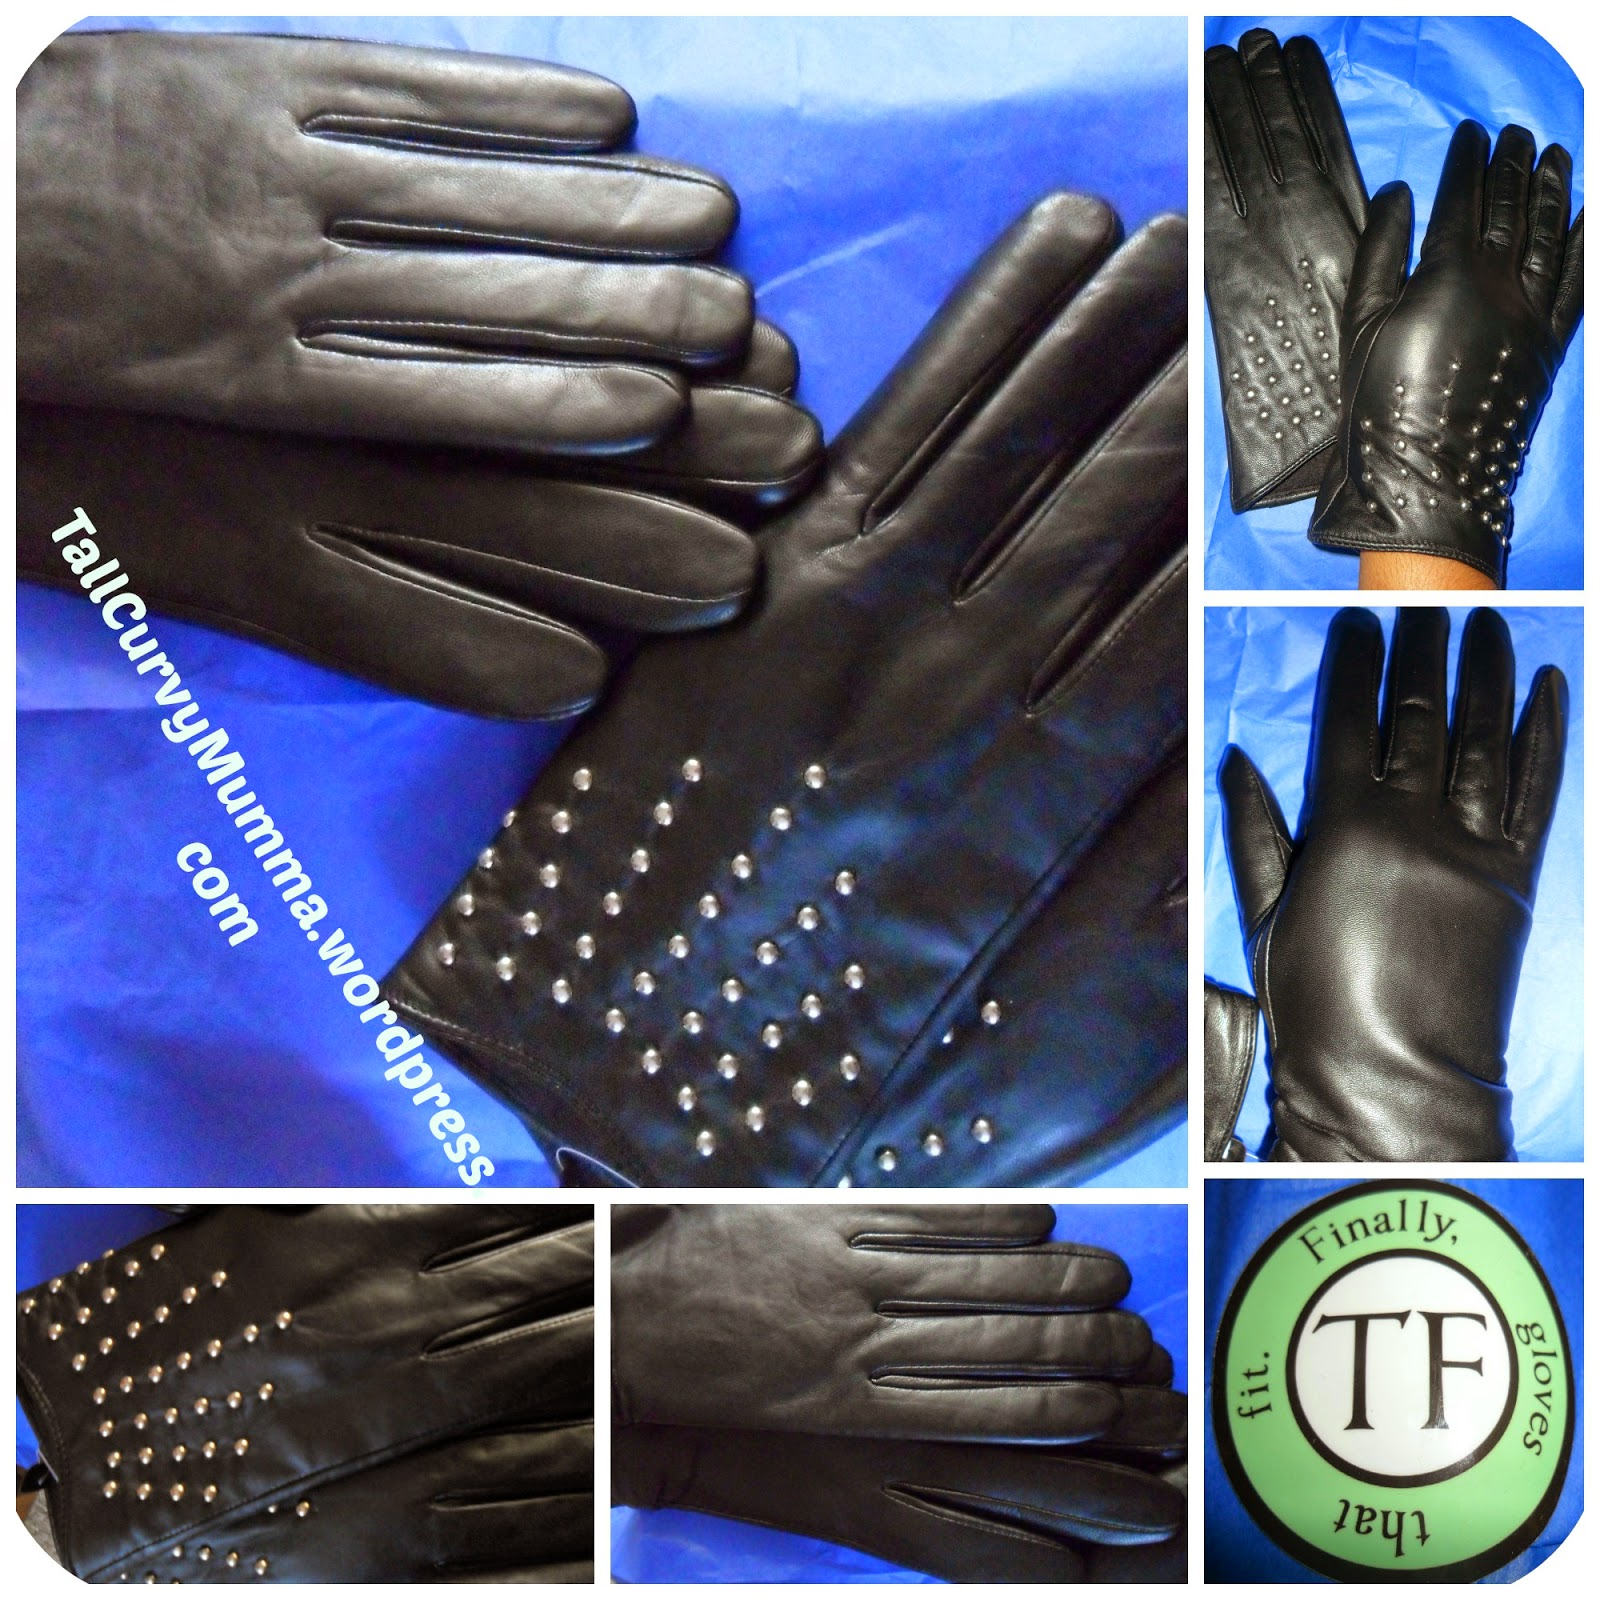 tallfingers glove competition